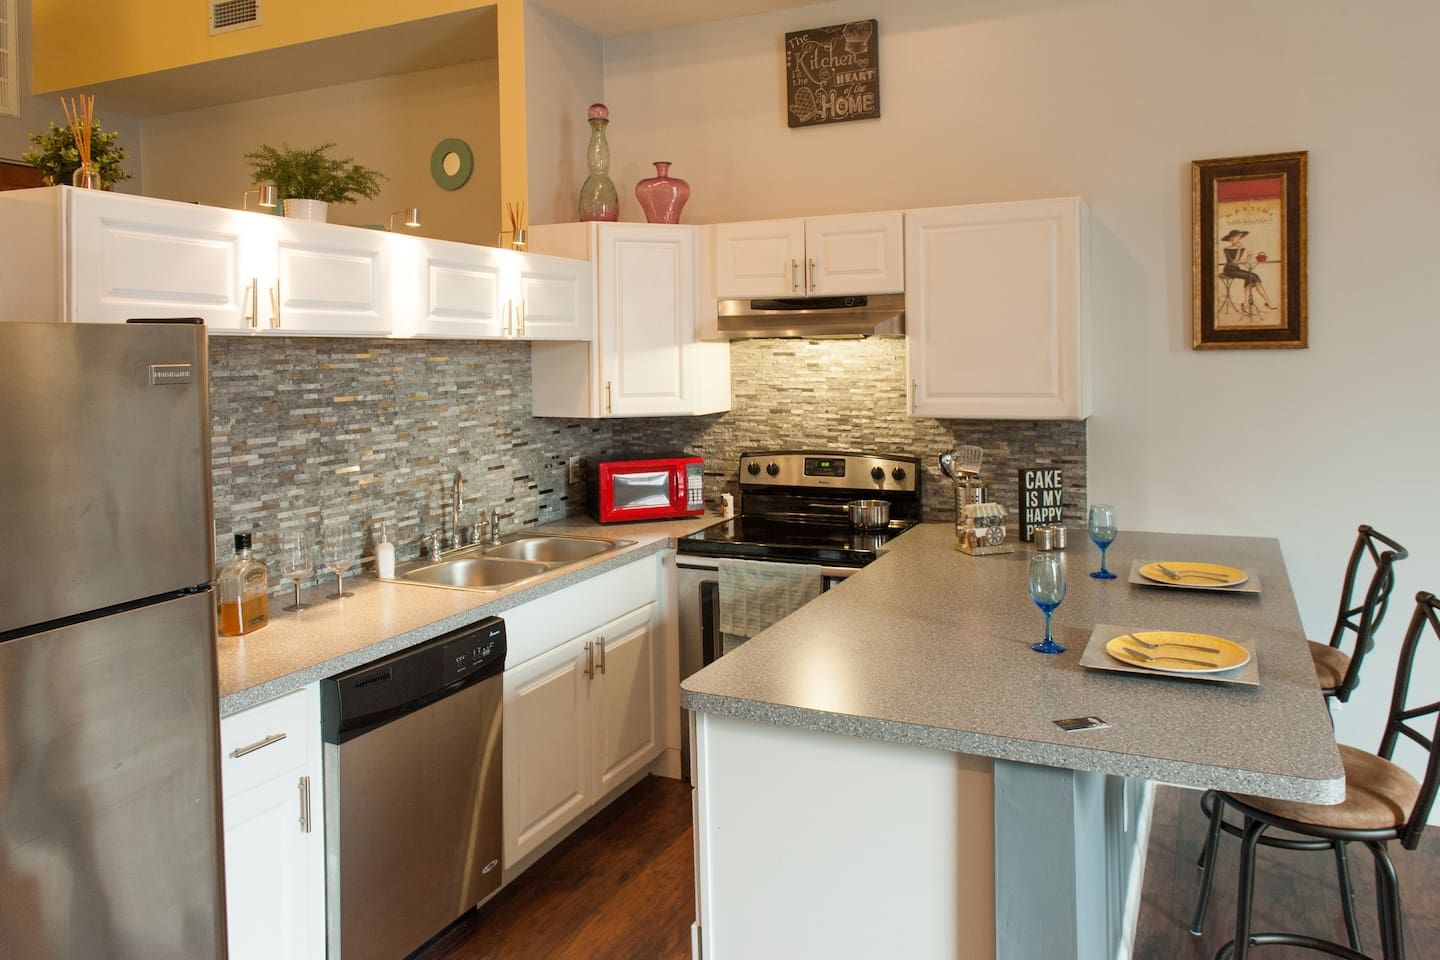 Home Away From Home Kitchen